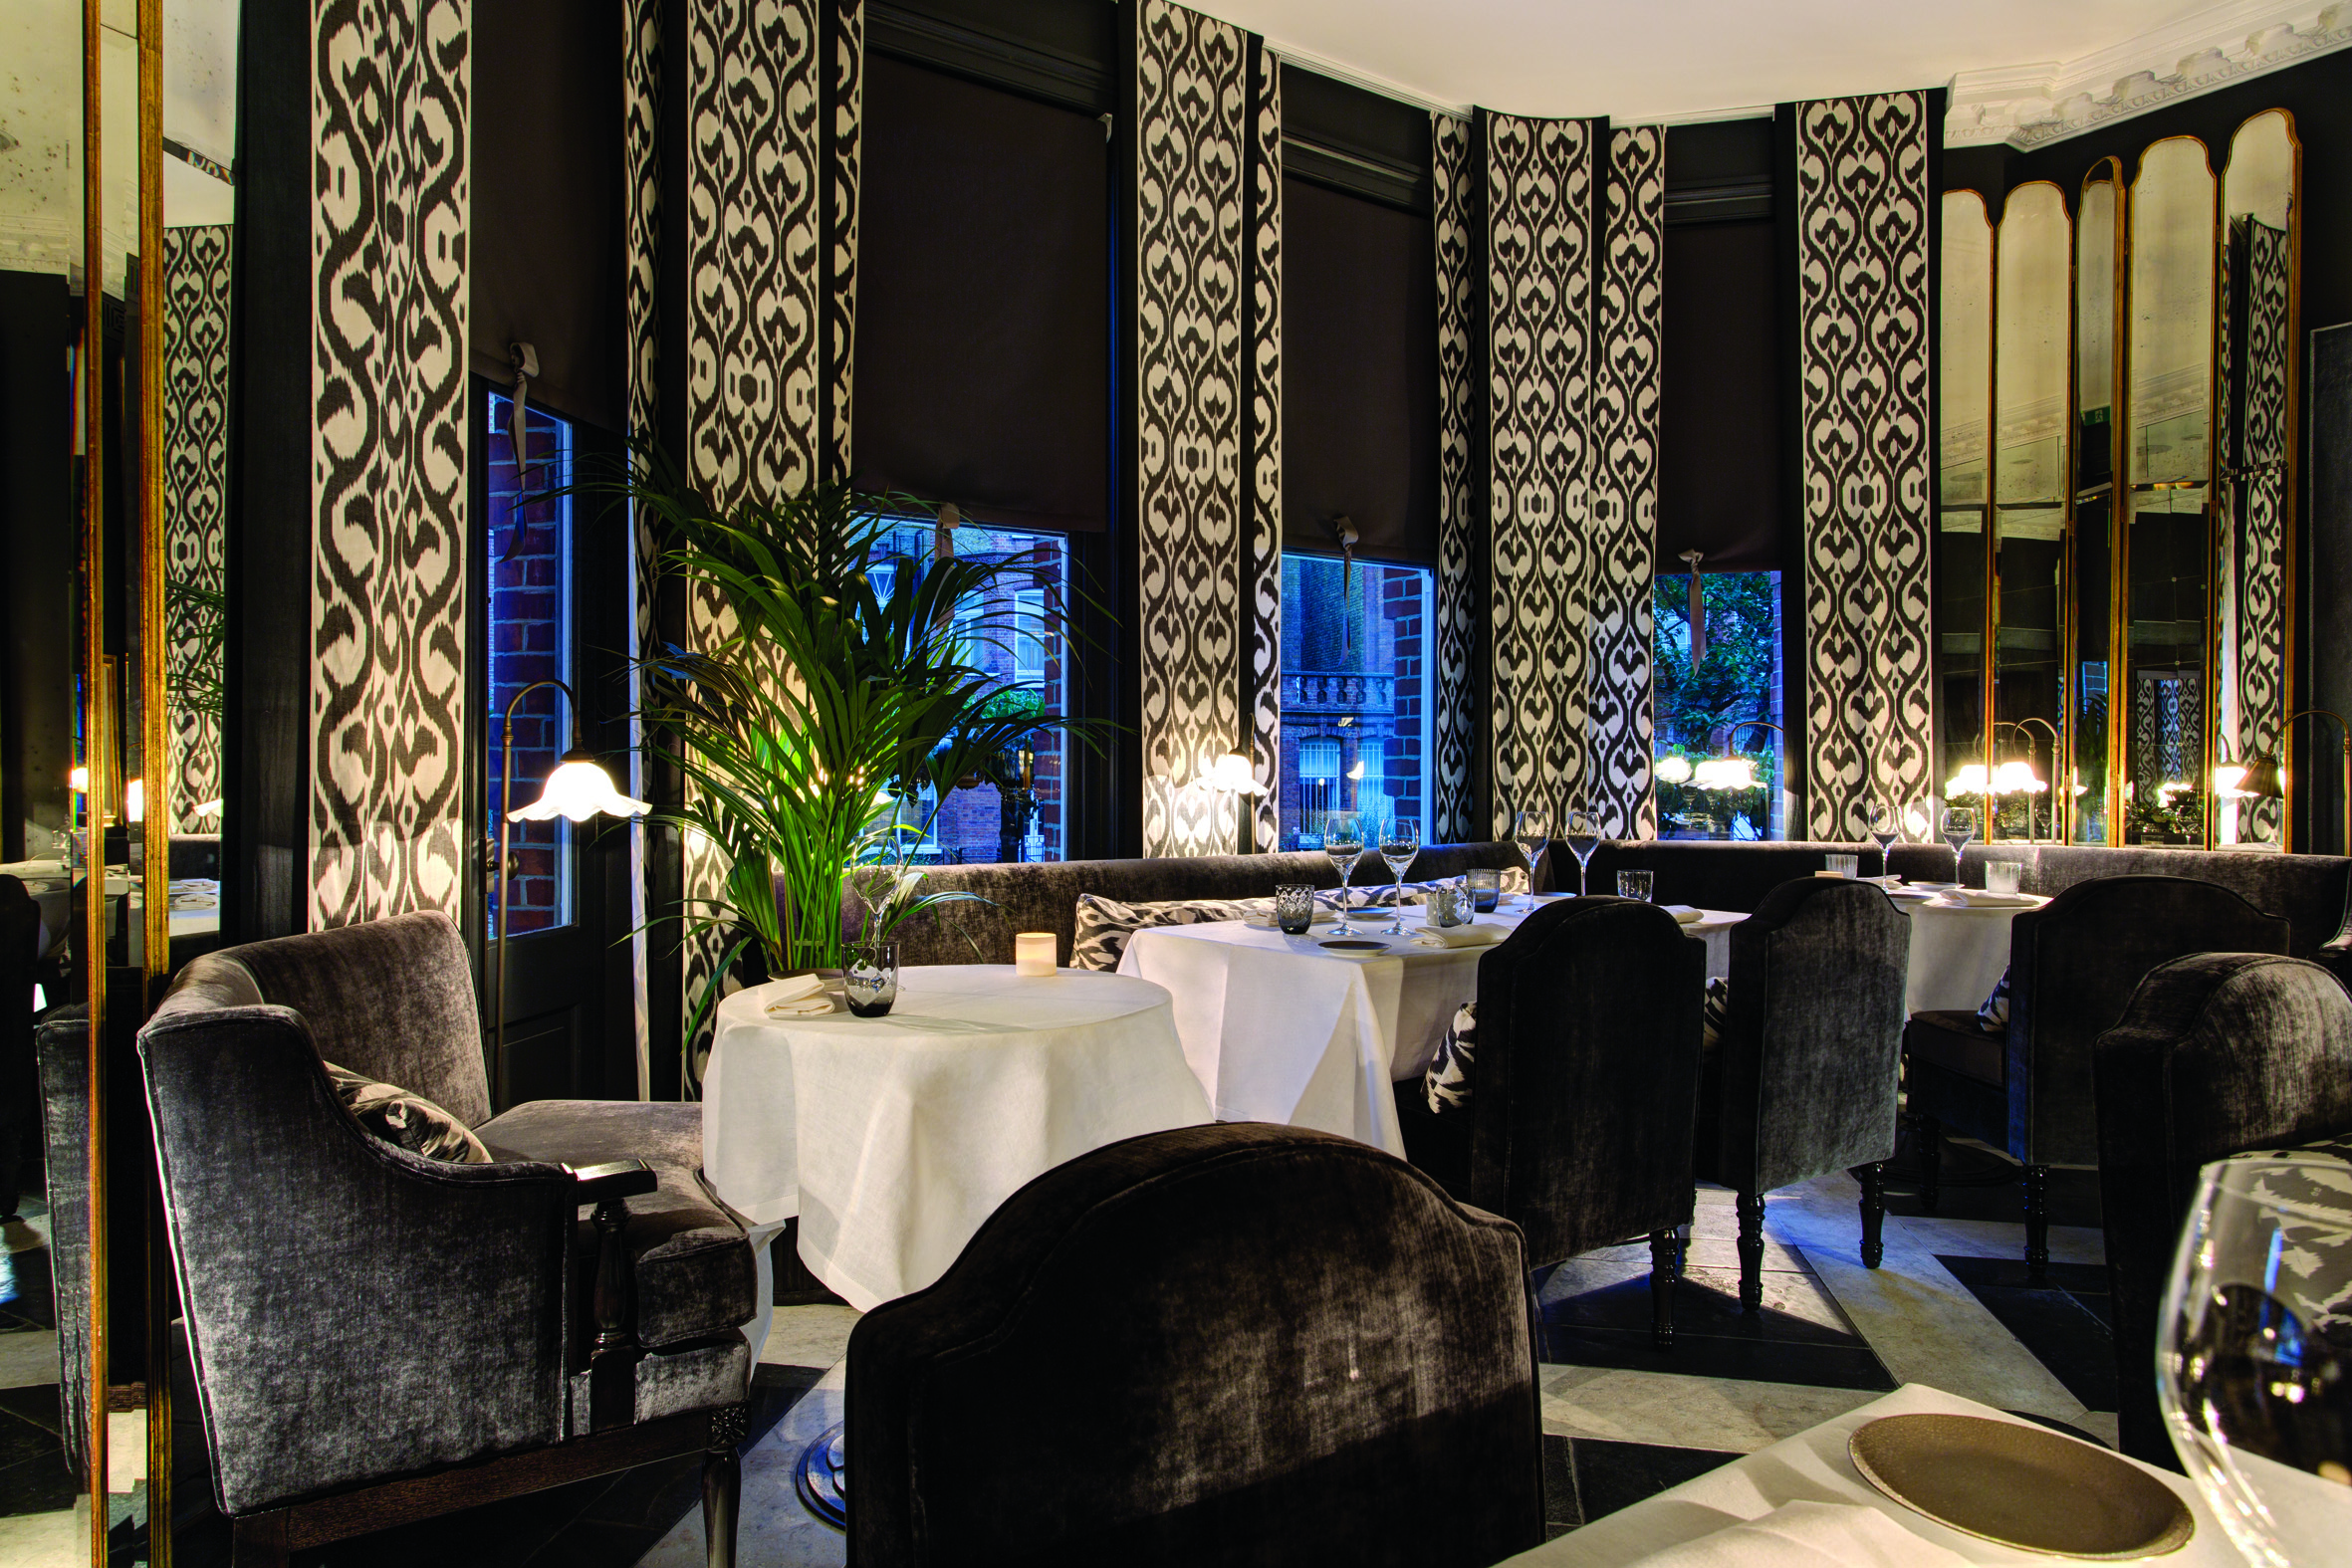 The Franklin Restaurant by Alfredo Russo, Knightsbridge 2